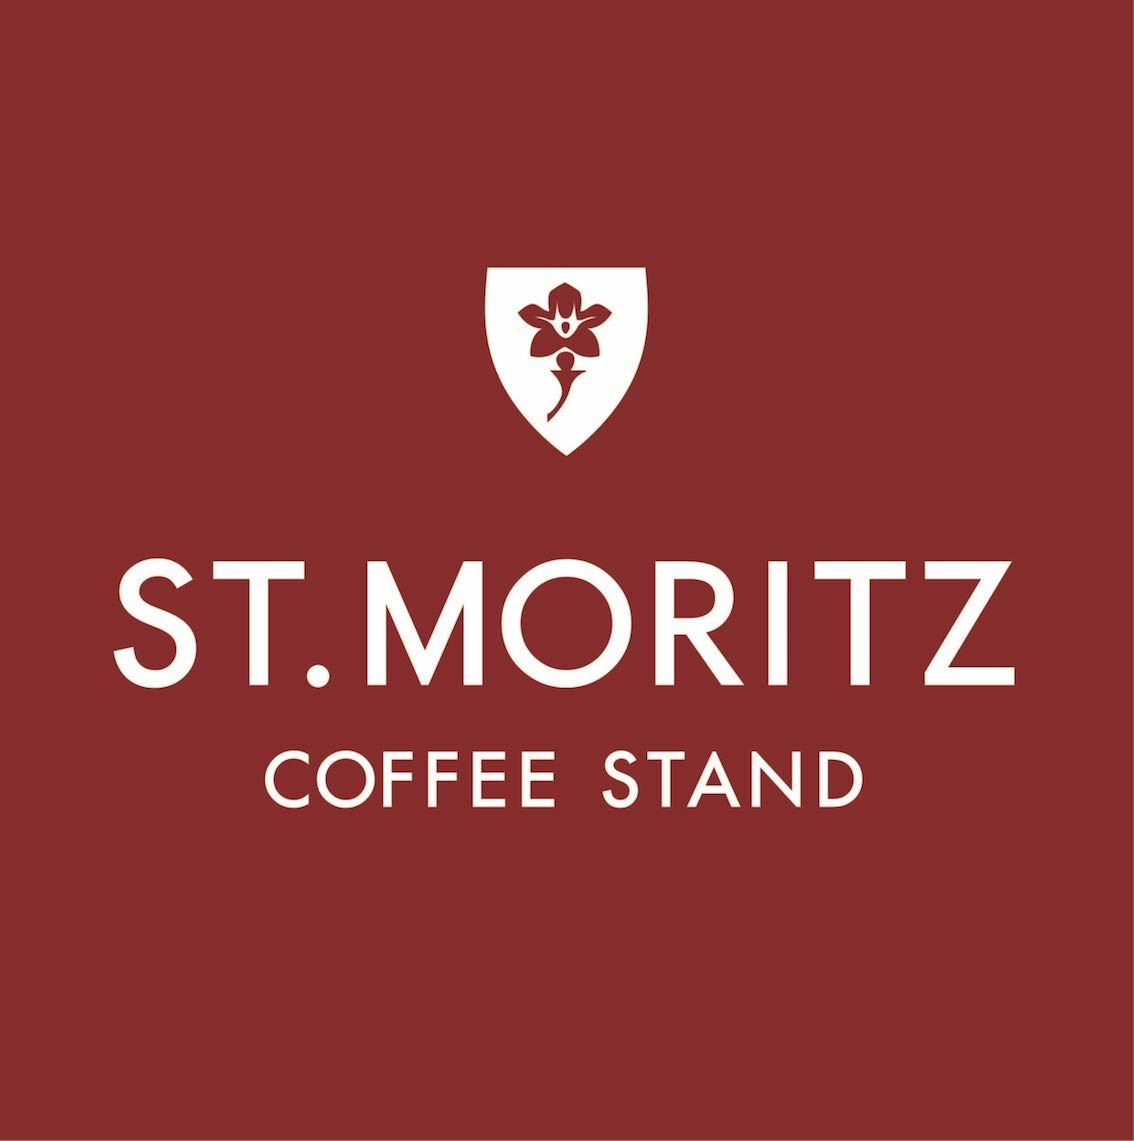 ST.MORITZ COFFEE STAND